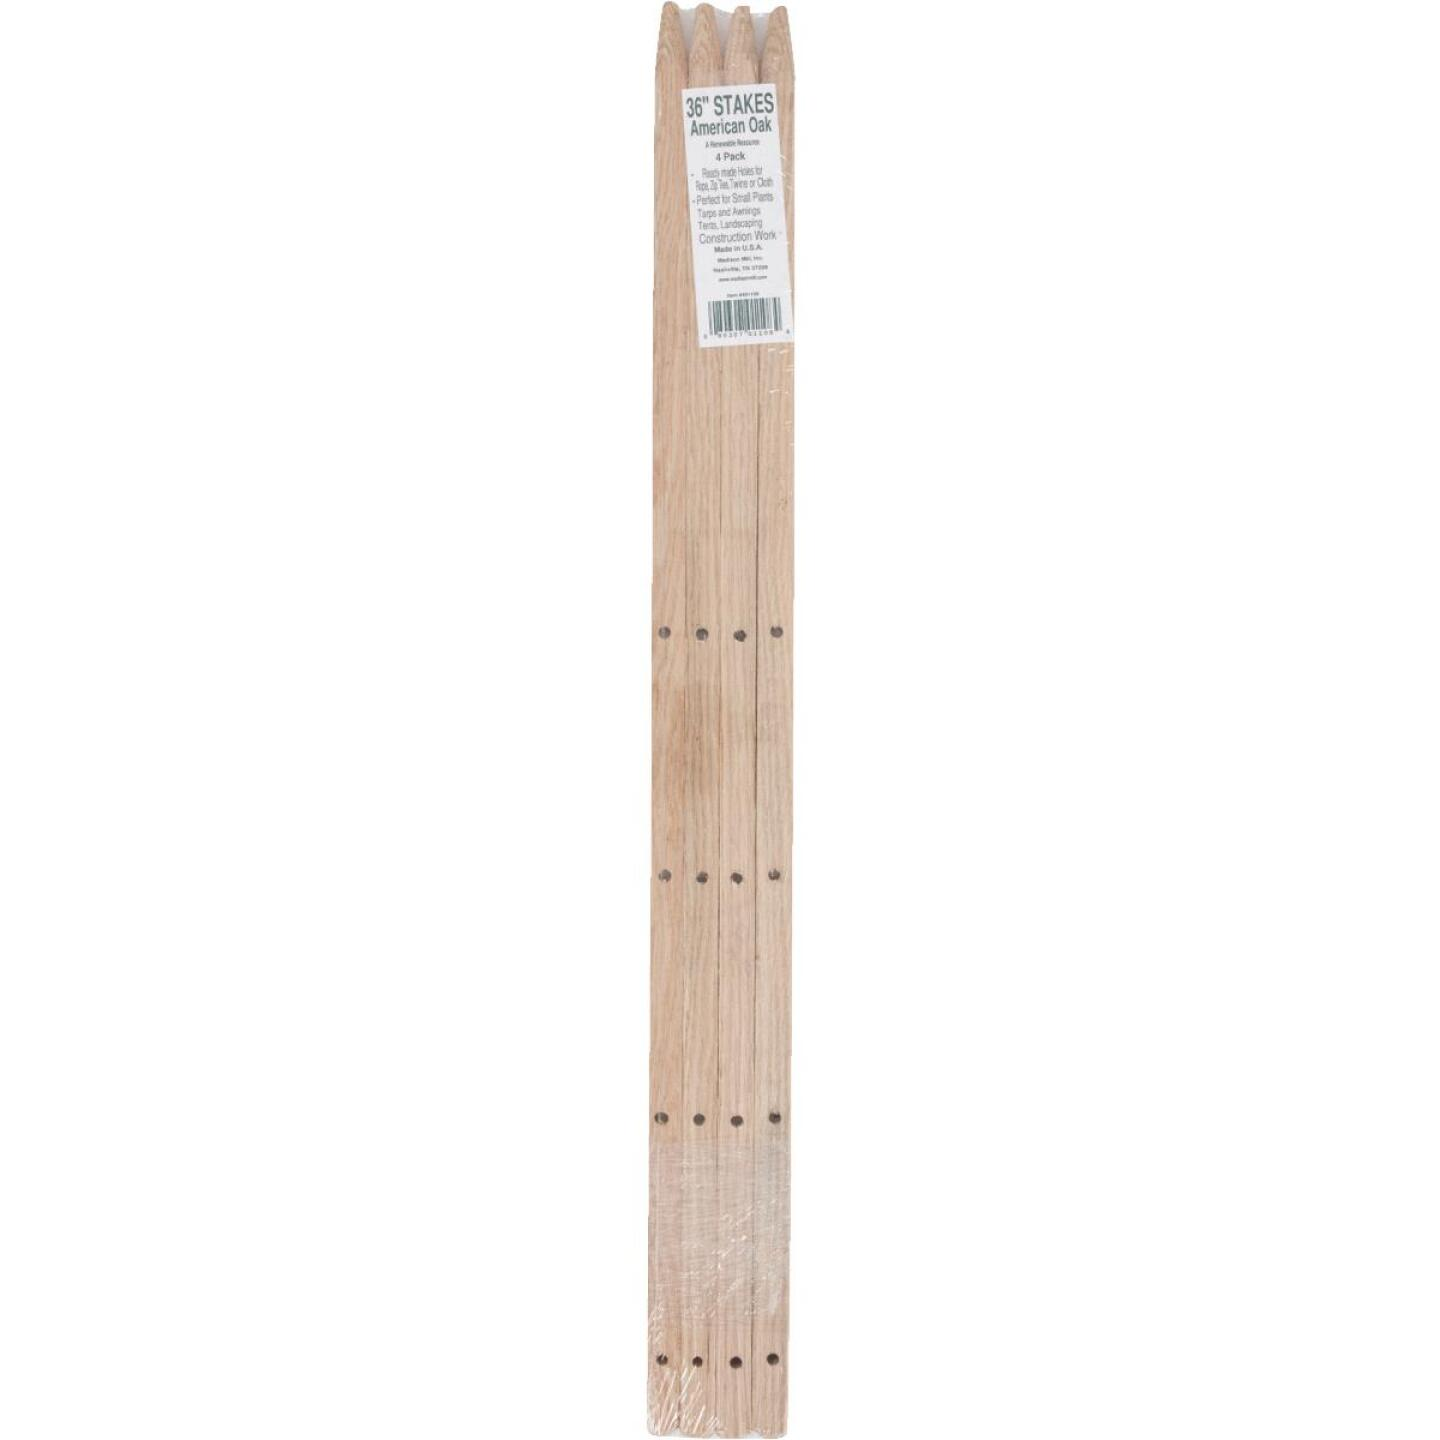 Madison Mill 36 In. Oak Wood Plant Stake (4-Pack) Image 2